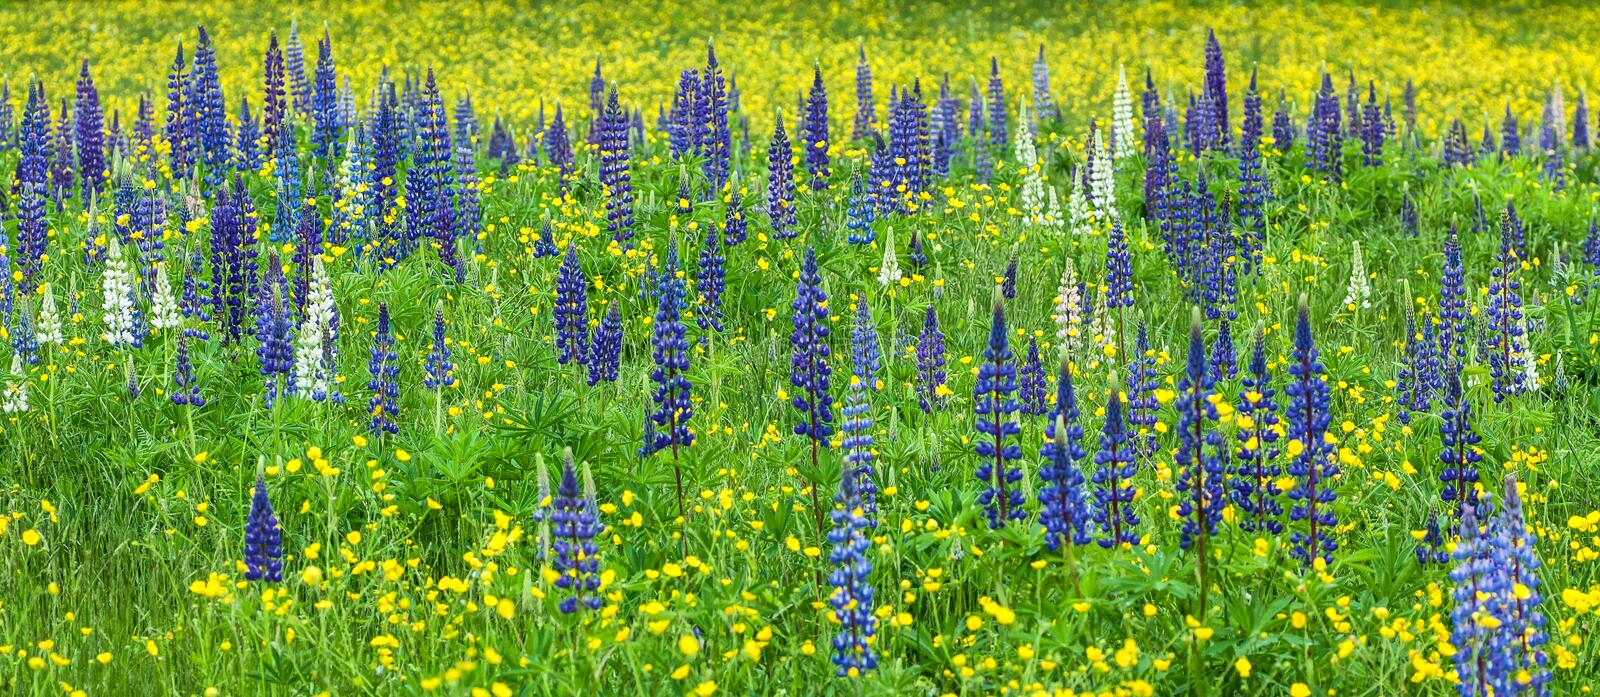 Lupines in a Field with Yellow Flowers royalty free stock photos